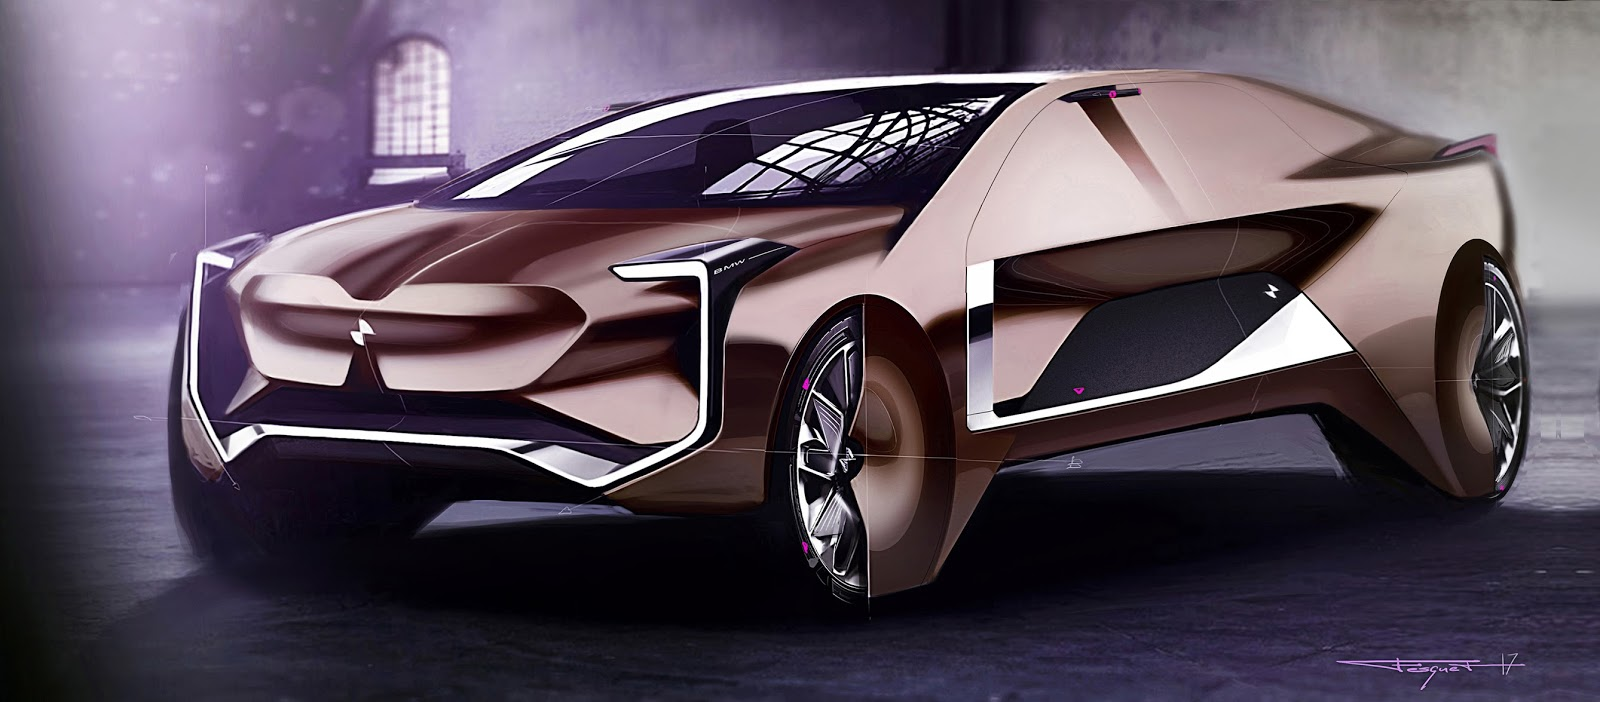 Bmw X8 Gran Coupe Luxury Vision By Julien Fesquet Motivezine